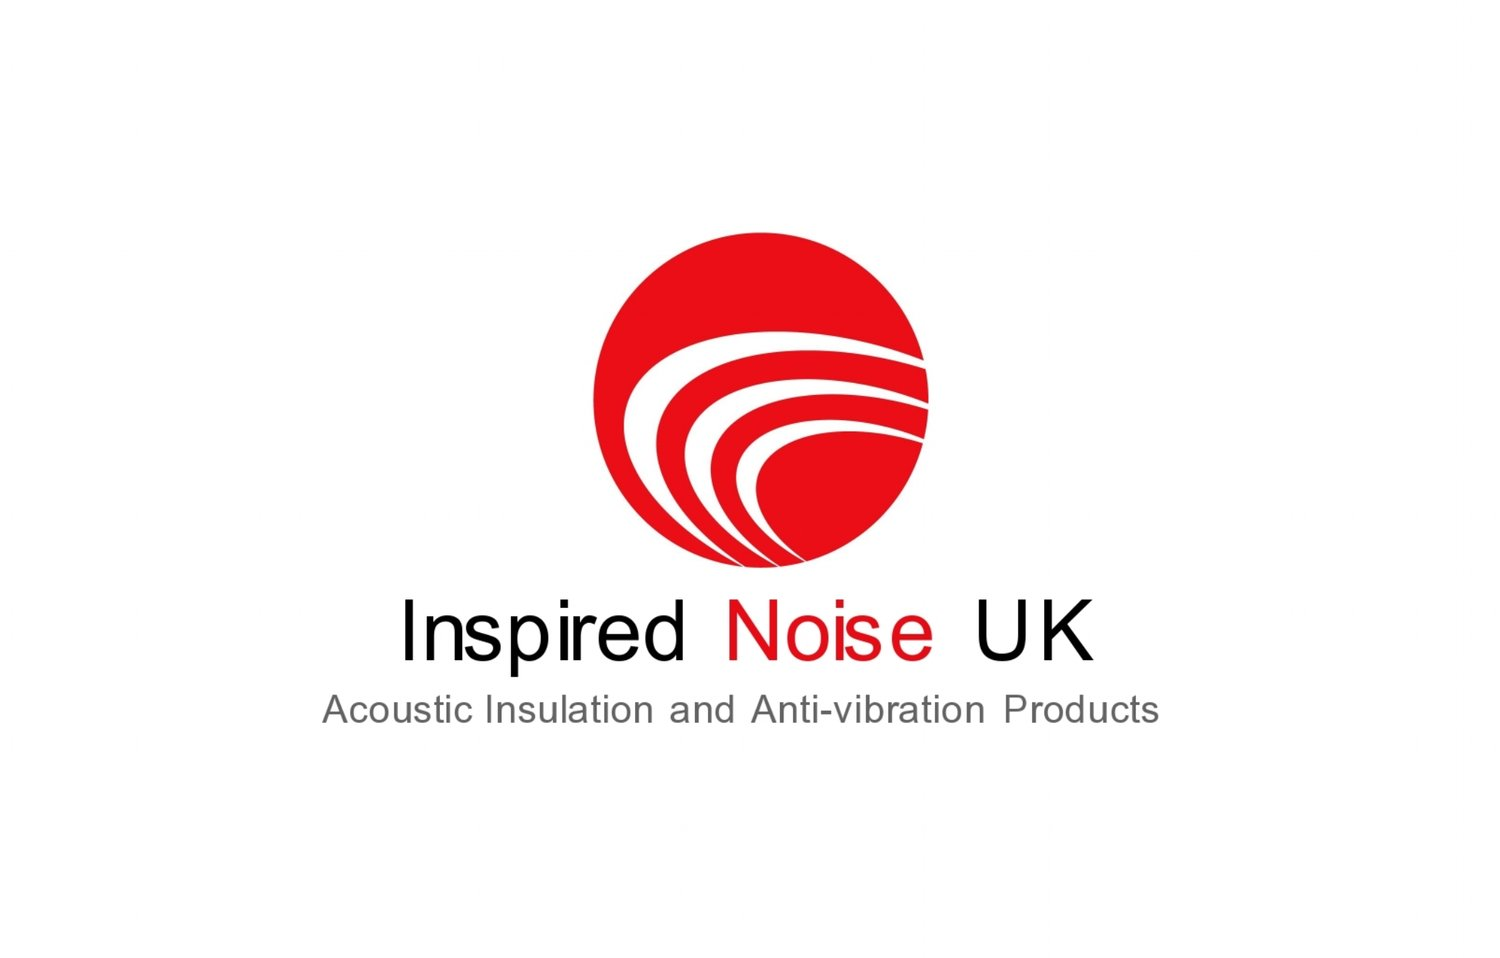 Inspired Noise UK